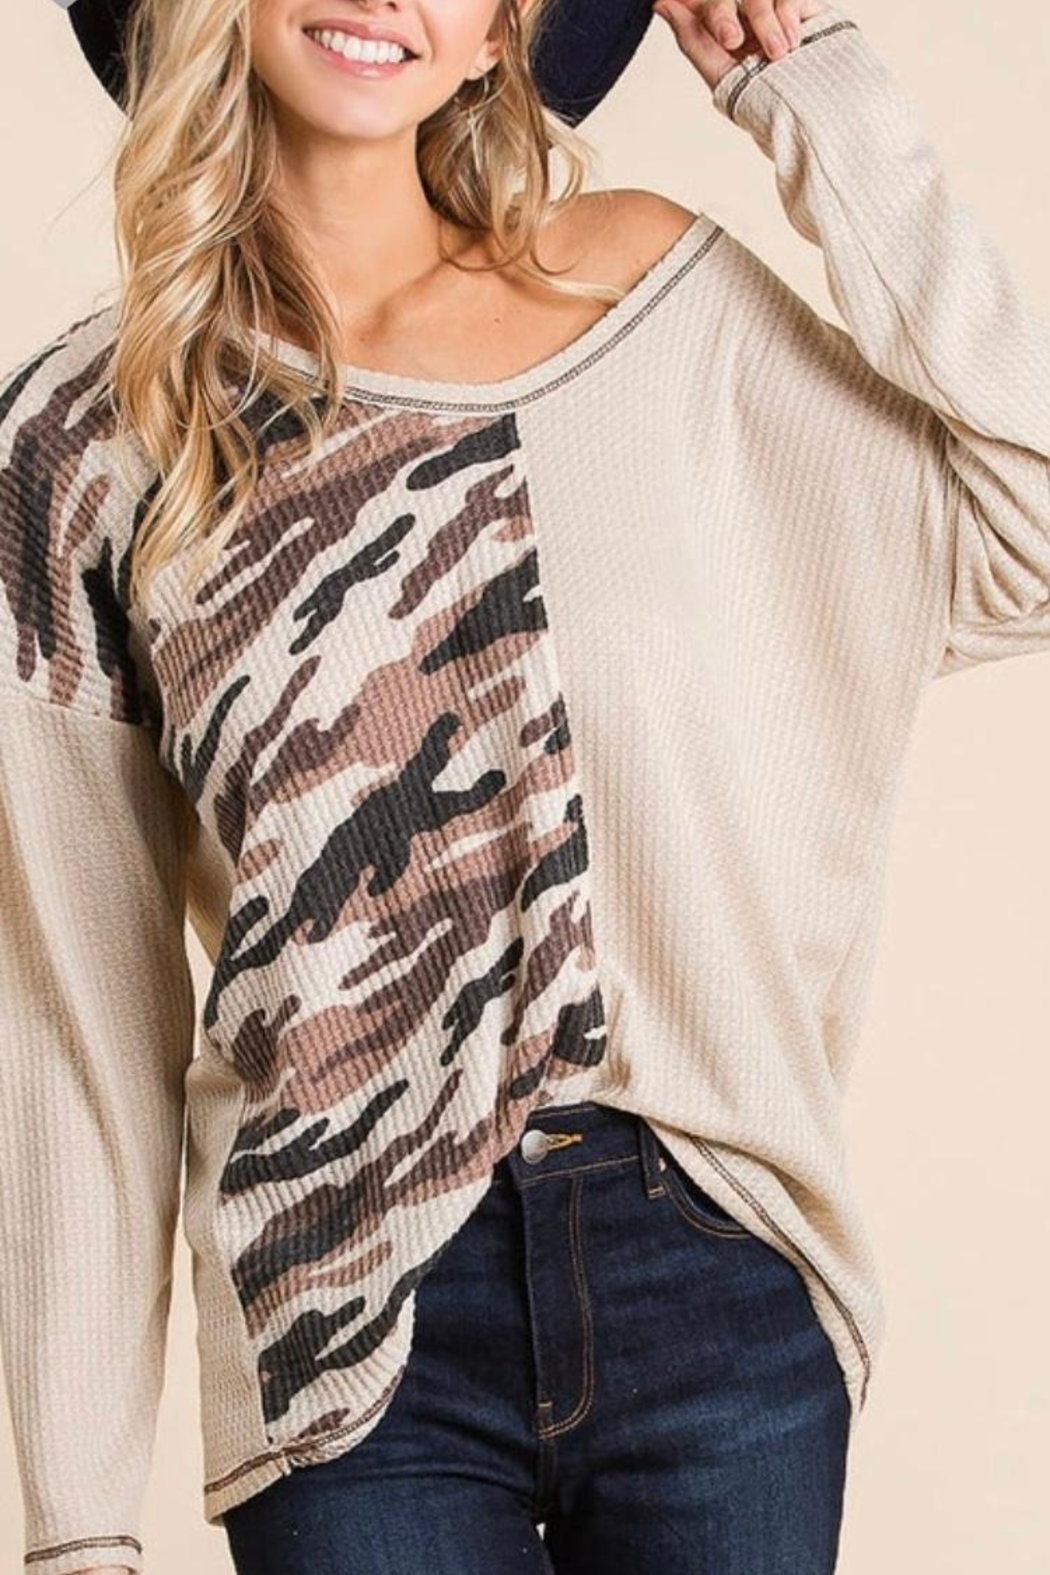 Bibi THERMAL WAFFLE DEEP V NECK TOP WITH CAMOUFLAGE - Front Full Image